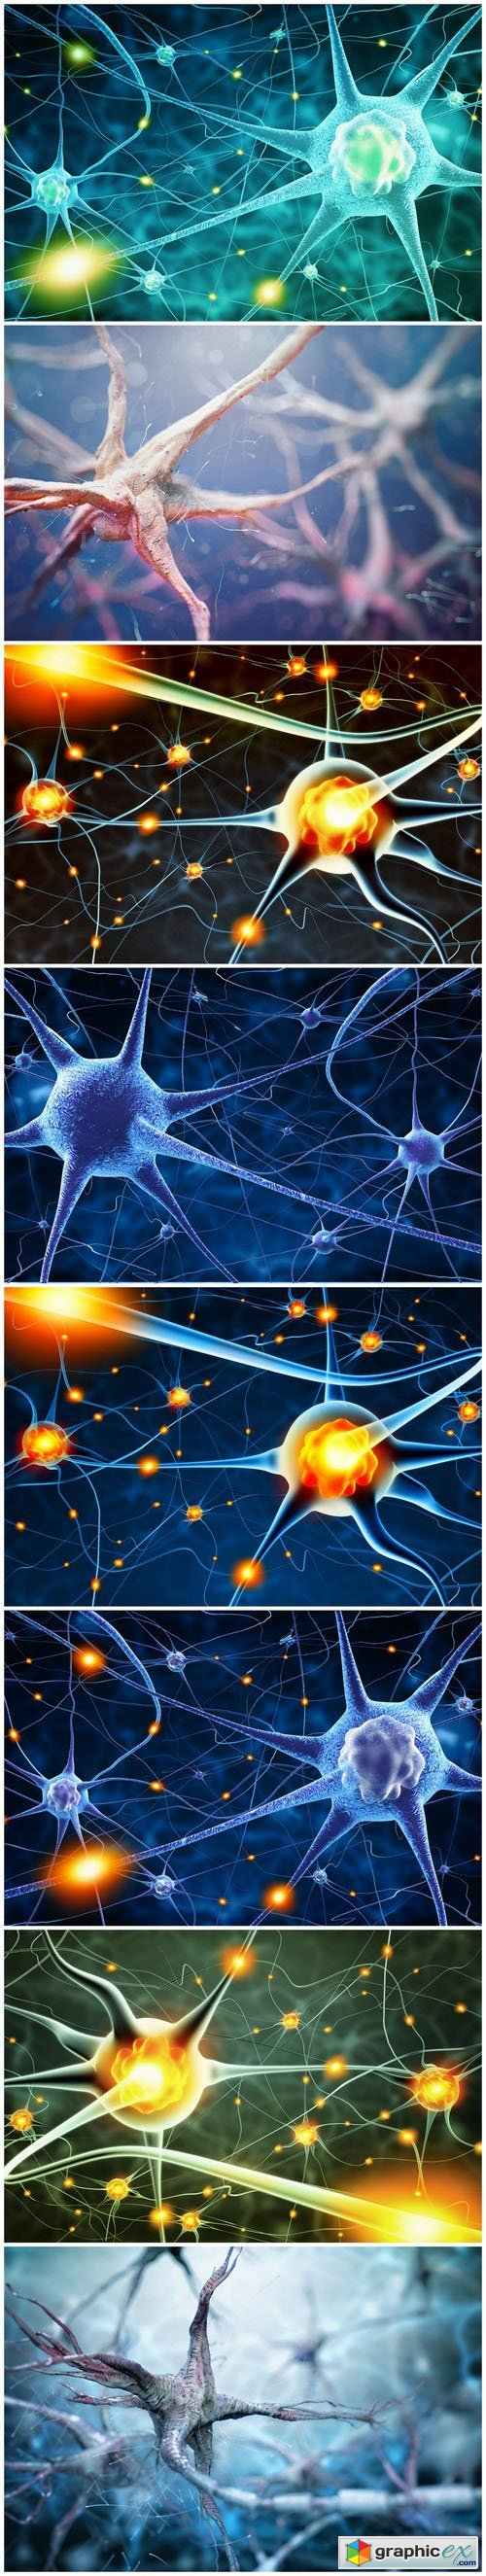 Active nerve cells - Set of 8xUHQ JPEG Professional Stock Images